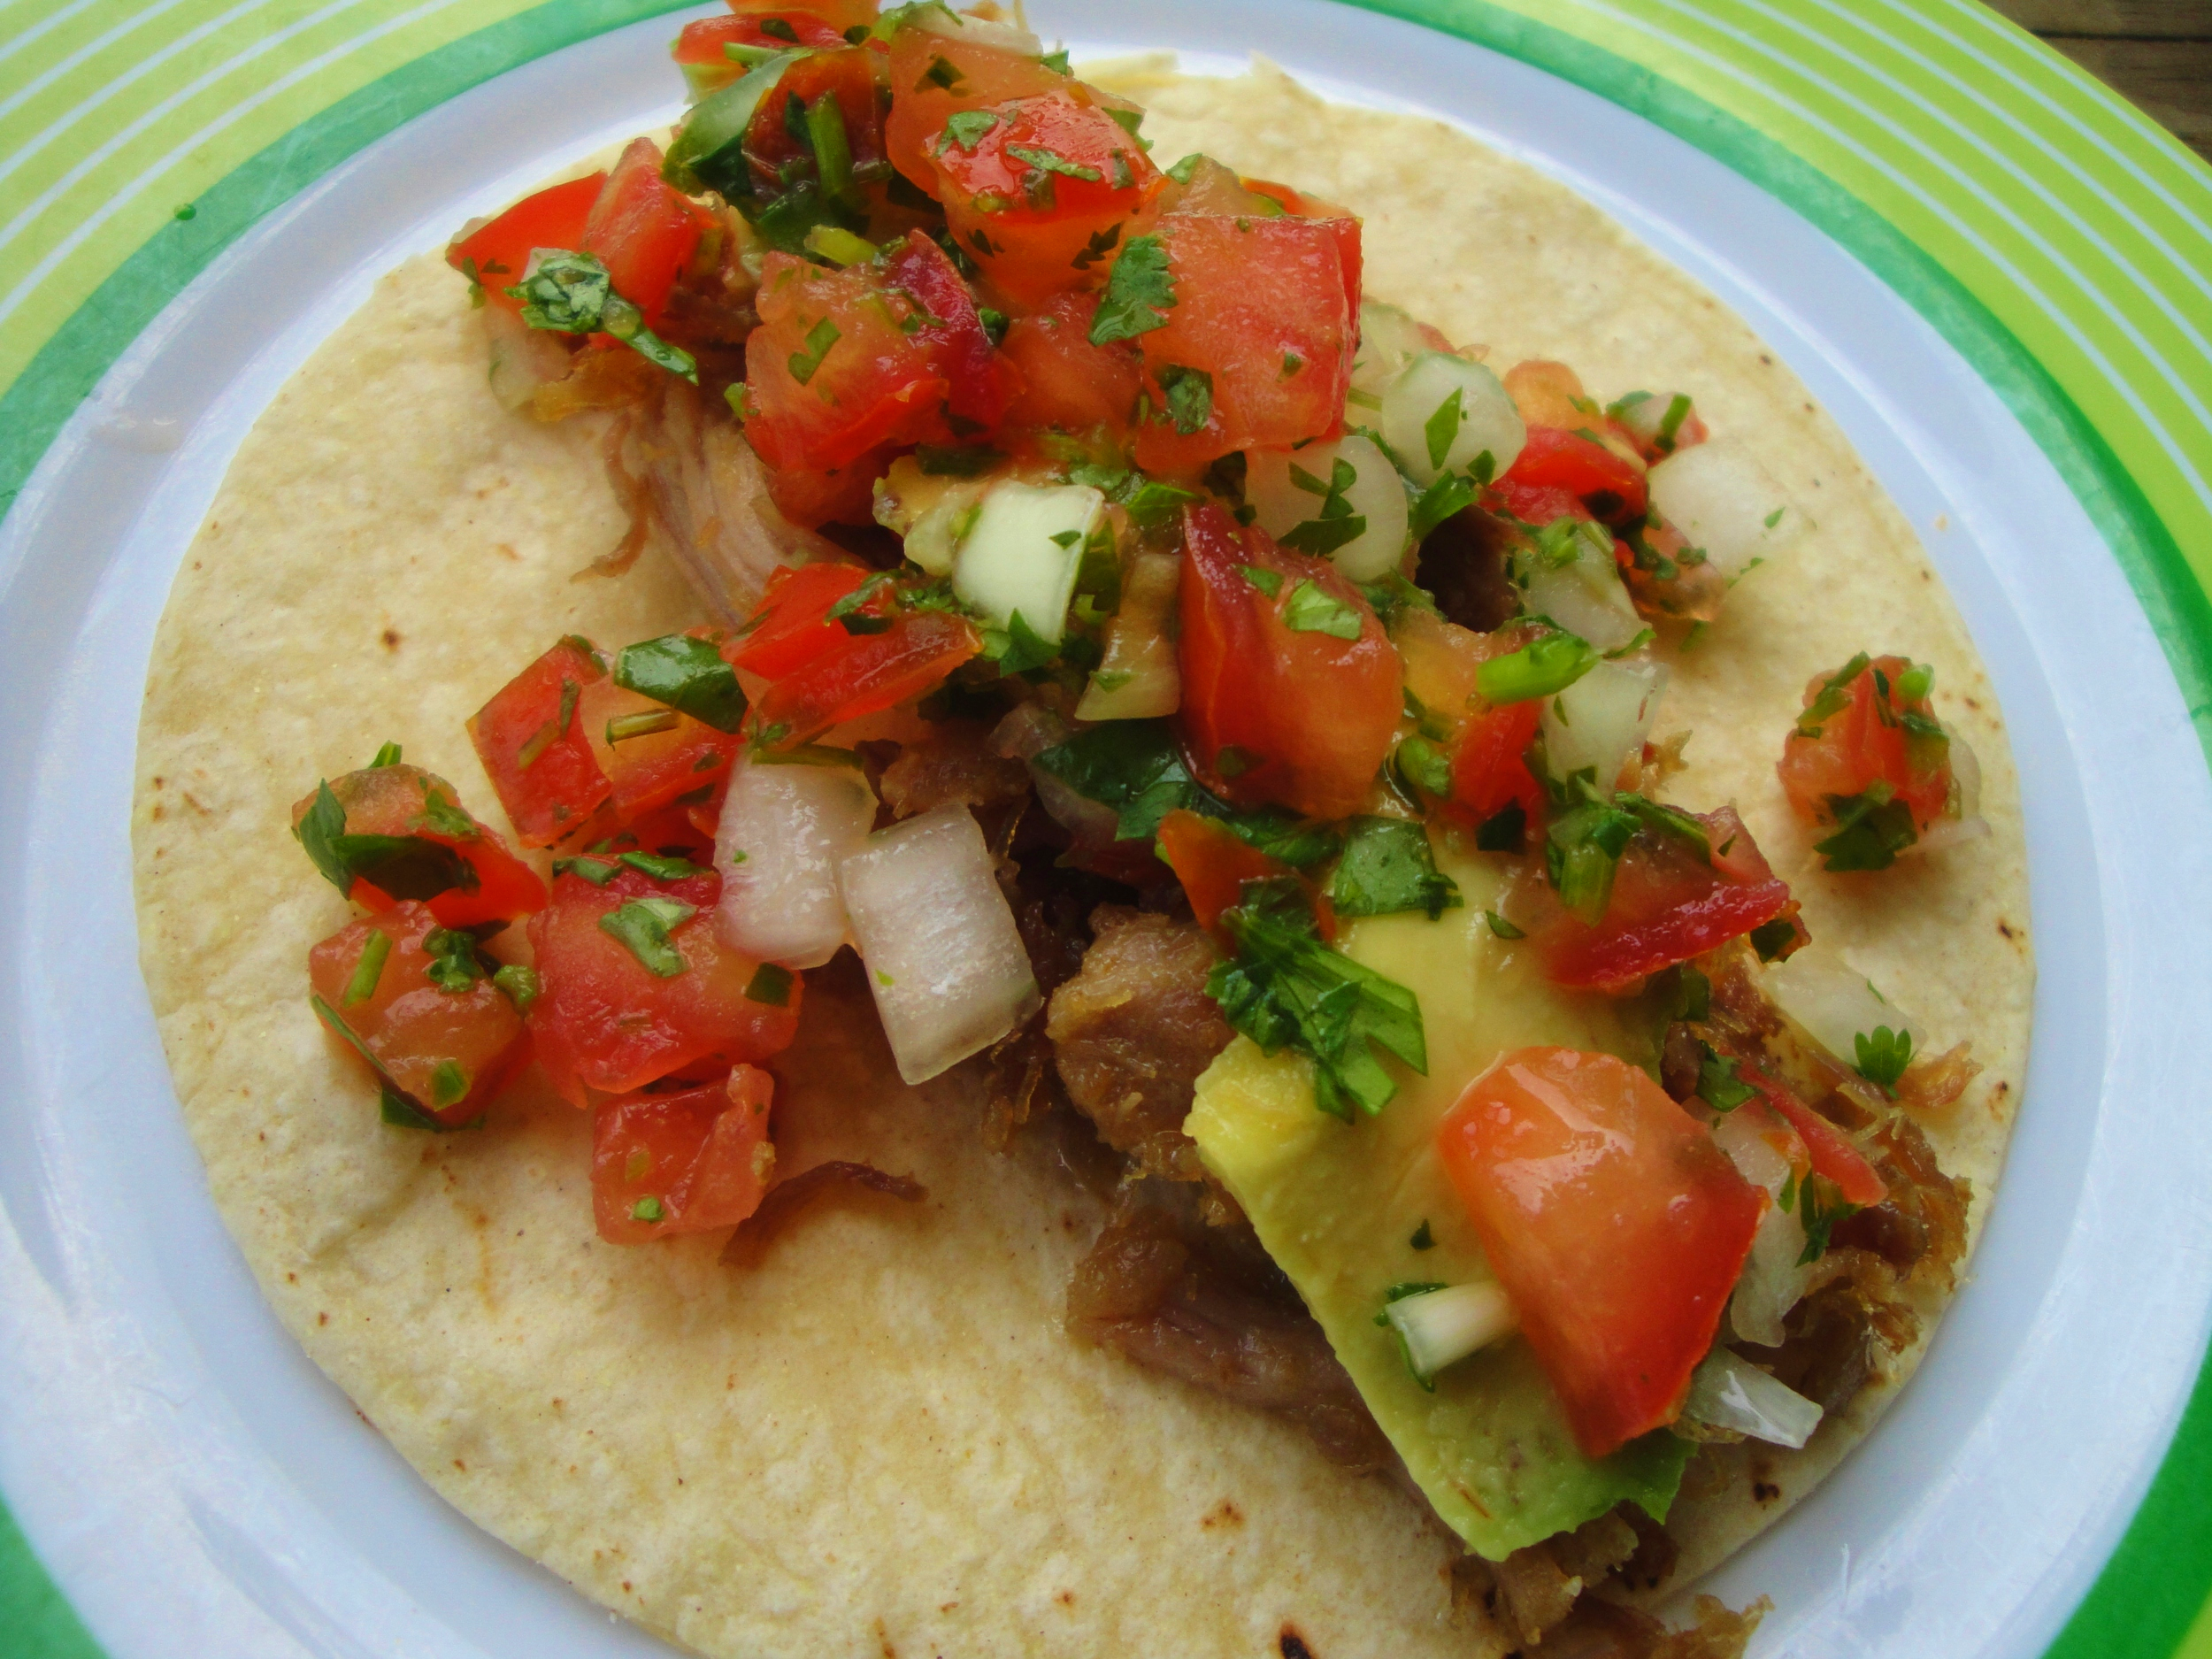 Carnitas taco, topped with avocado slices and  pico de gallo . Made in the Adventure Kitchen in June, 2015.